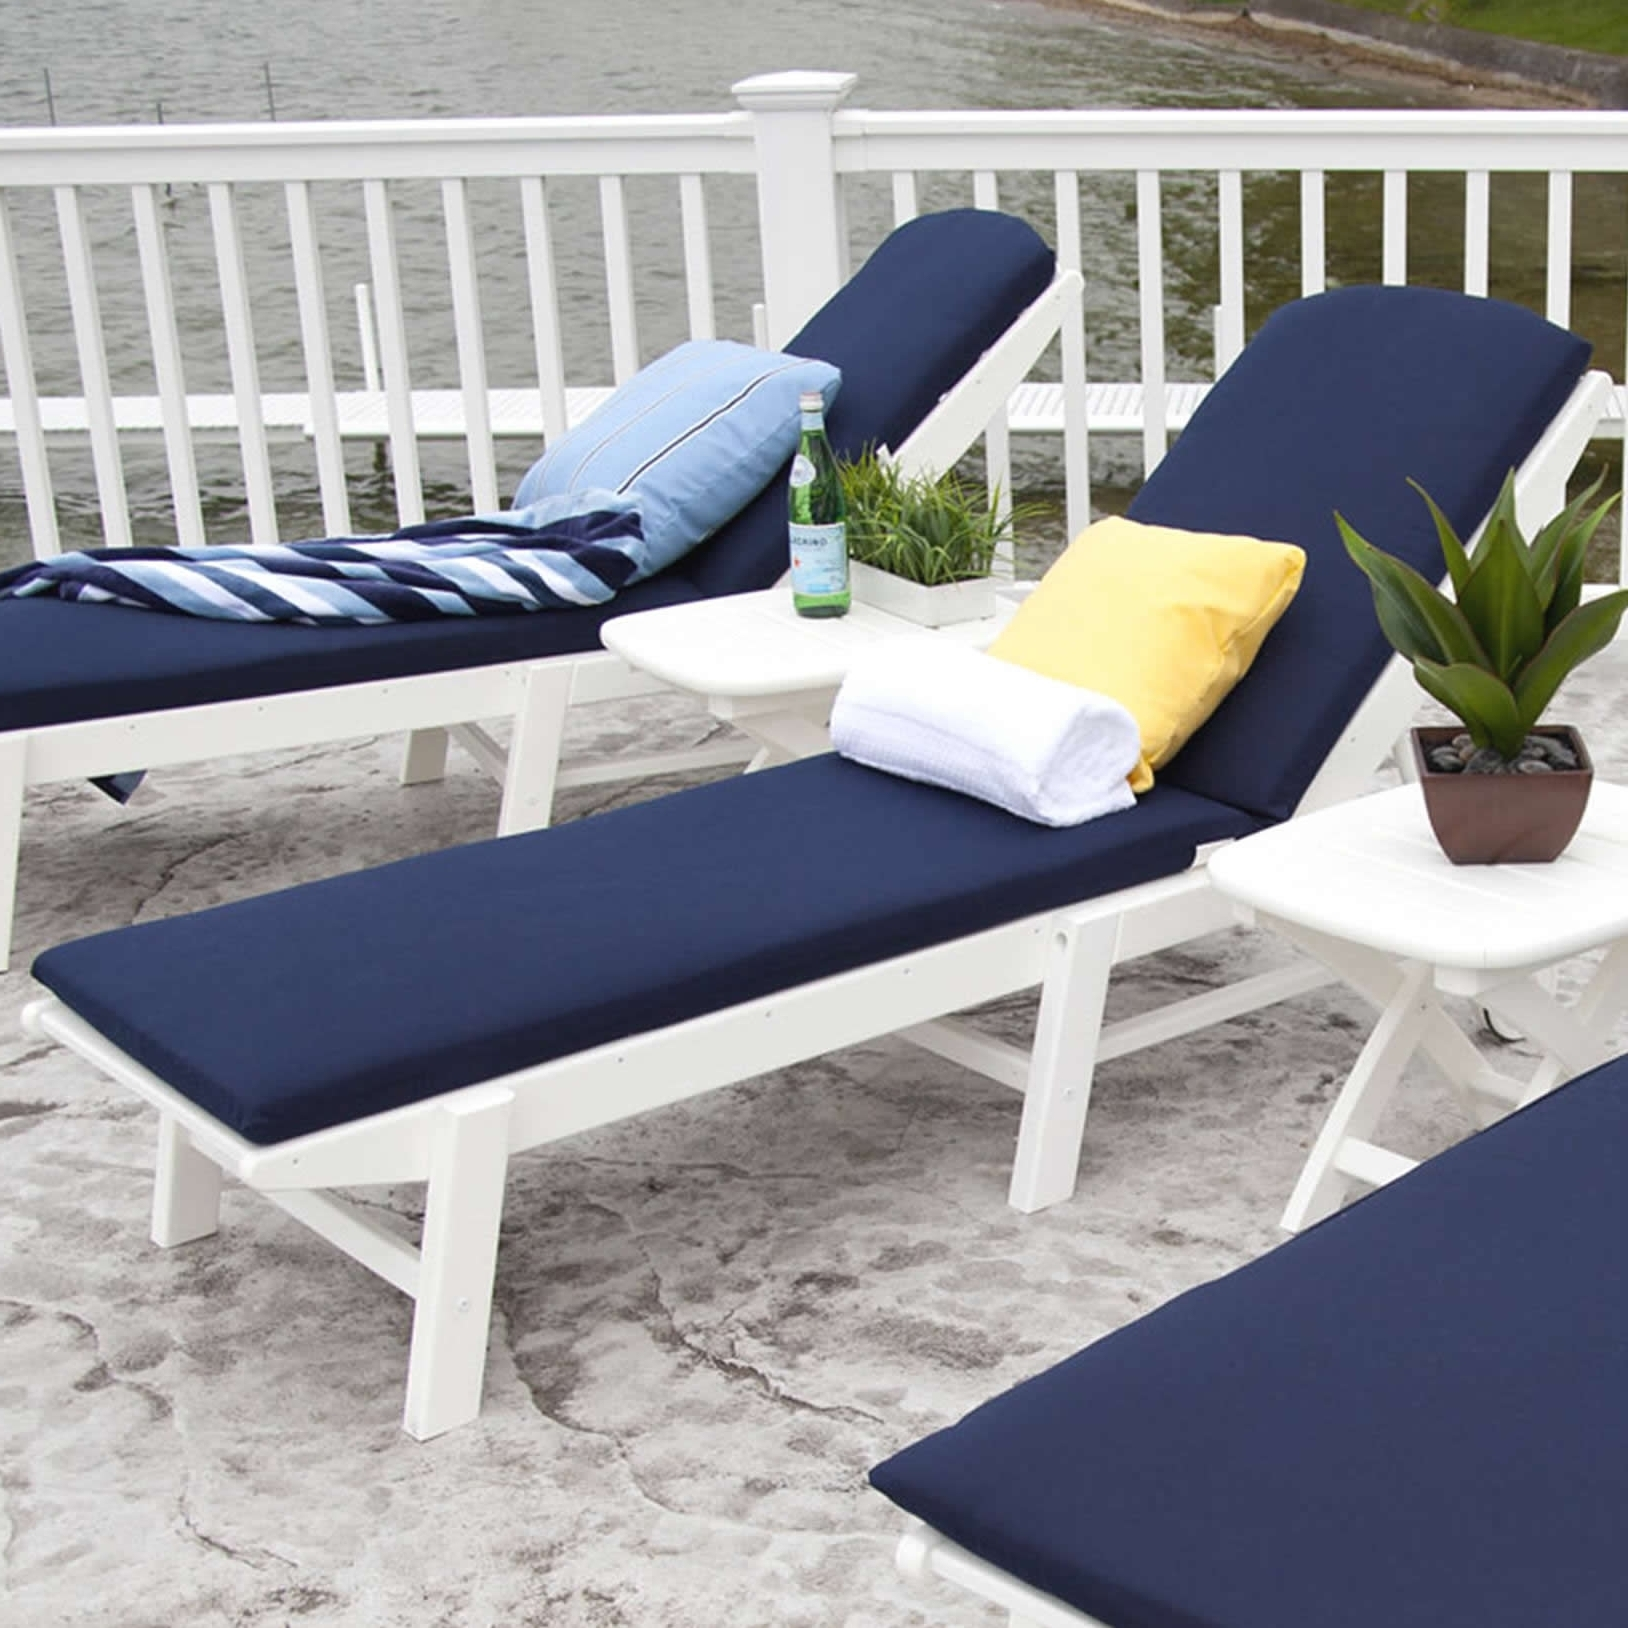 Polywood Nautical Chaise Lounge Cushions For Most Current Chaise Lounge Chair Outdoor Cushions (View 10 of 15)